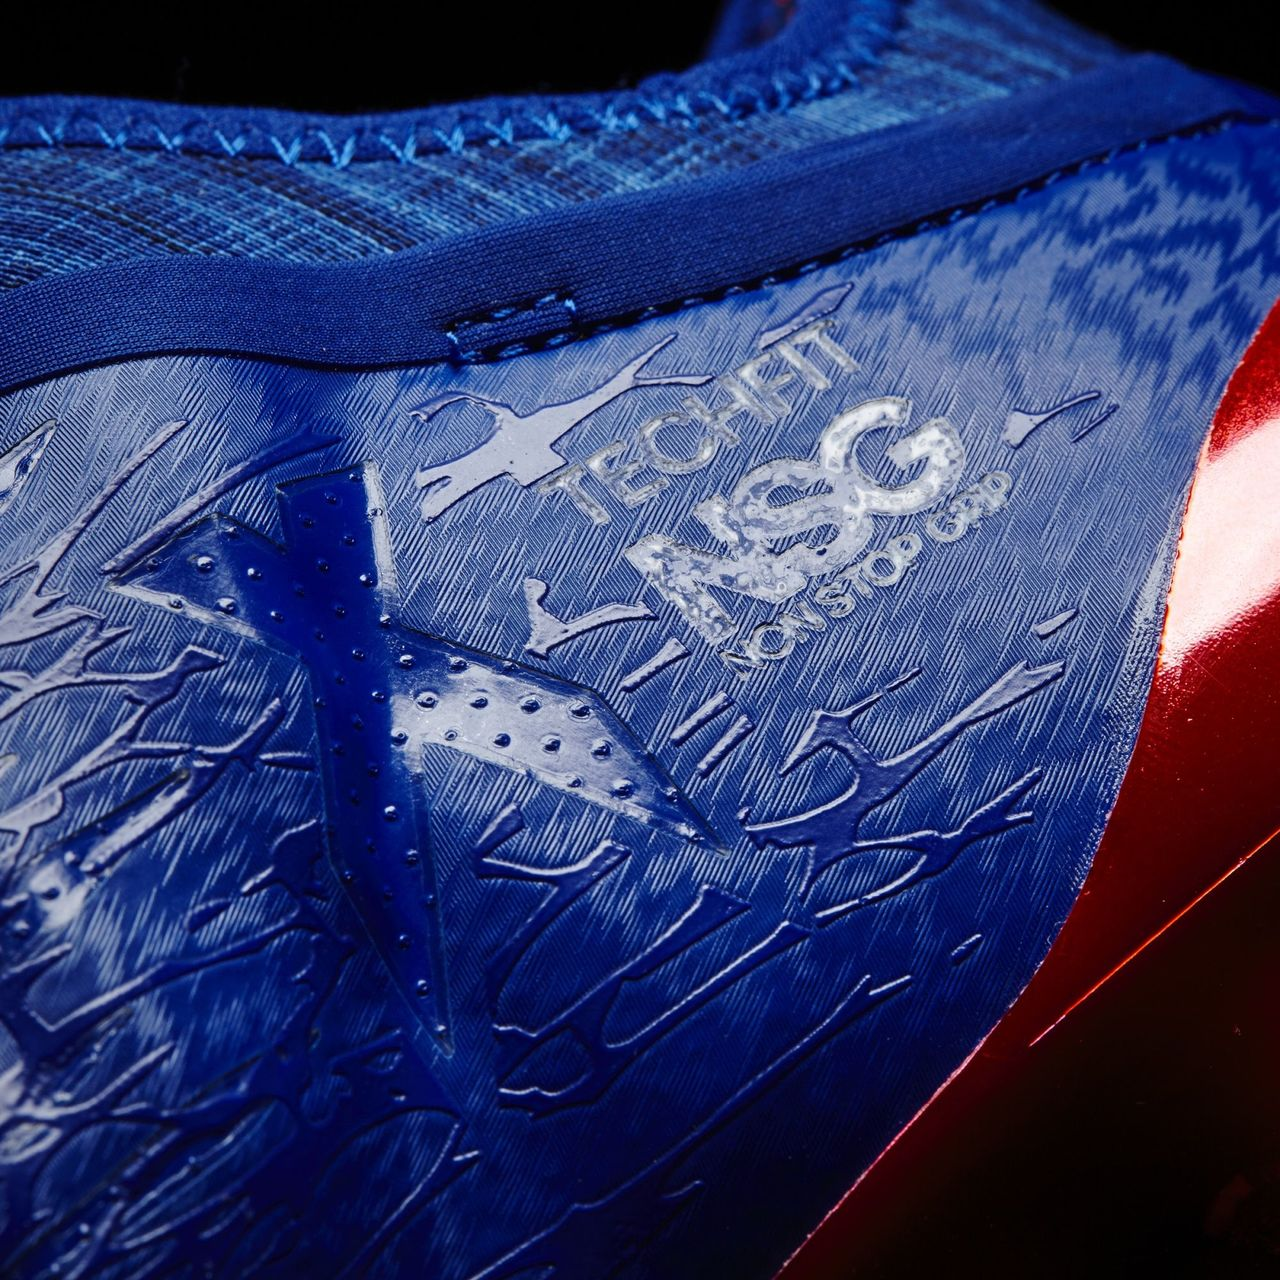 f04fe89e3 ... Click to enlarge image  adidas_x_16_purechaos_firm_ground_boots_collegiate_royal_solar_red_solar_red_g.jpg  ...